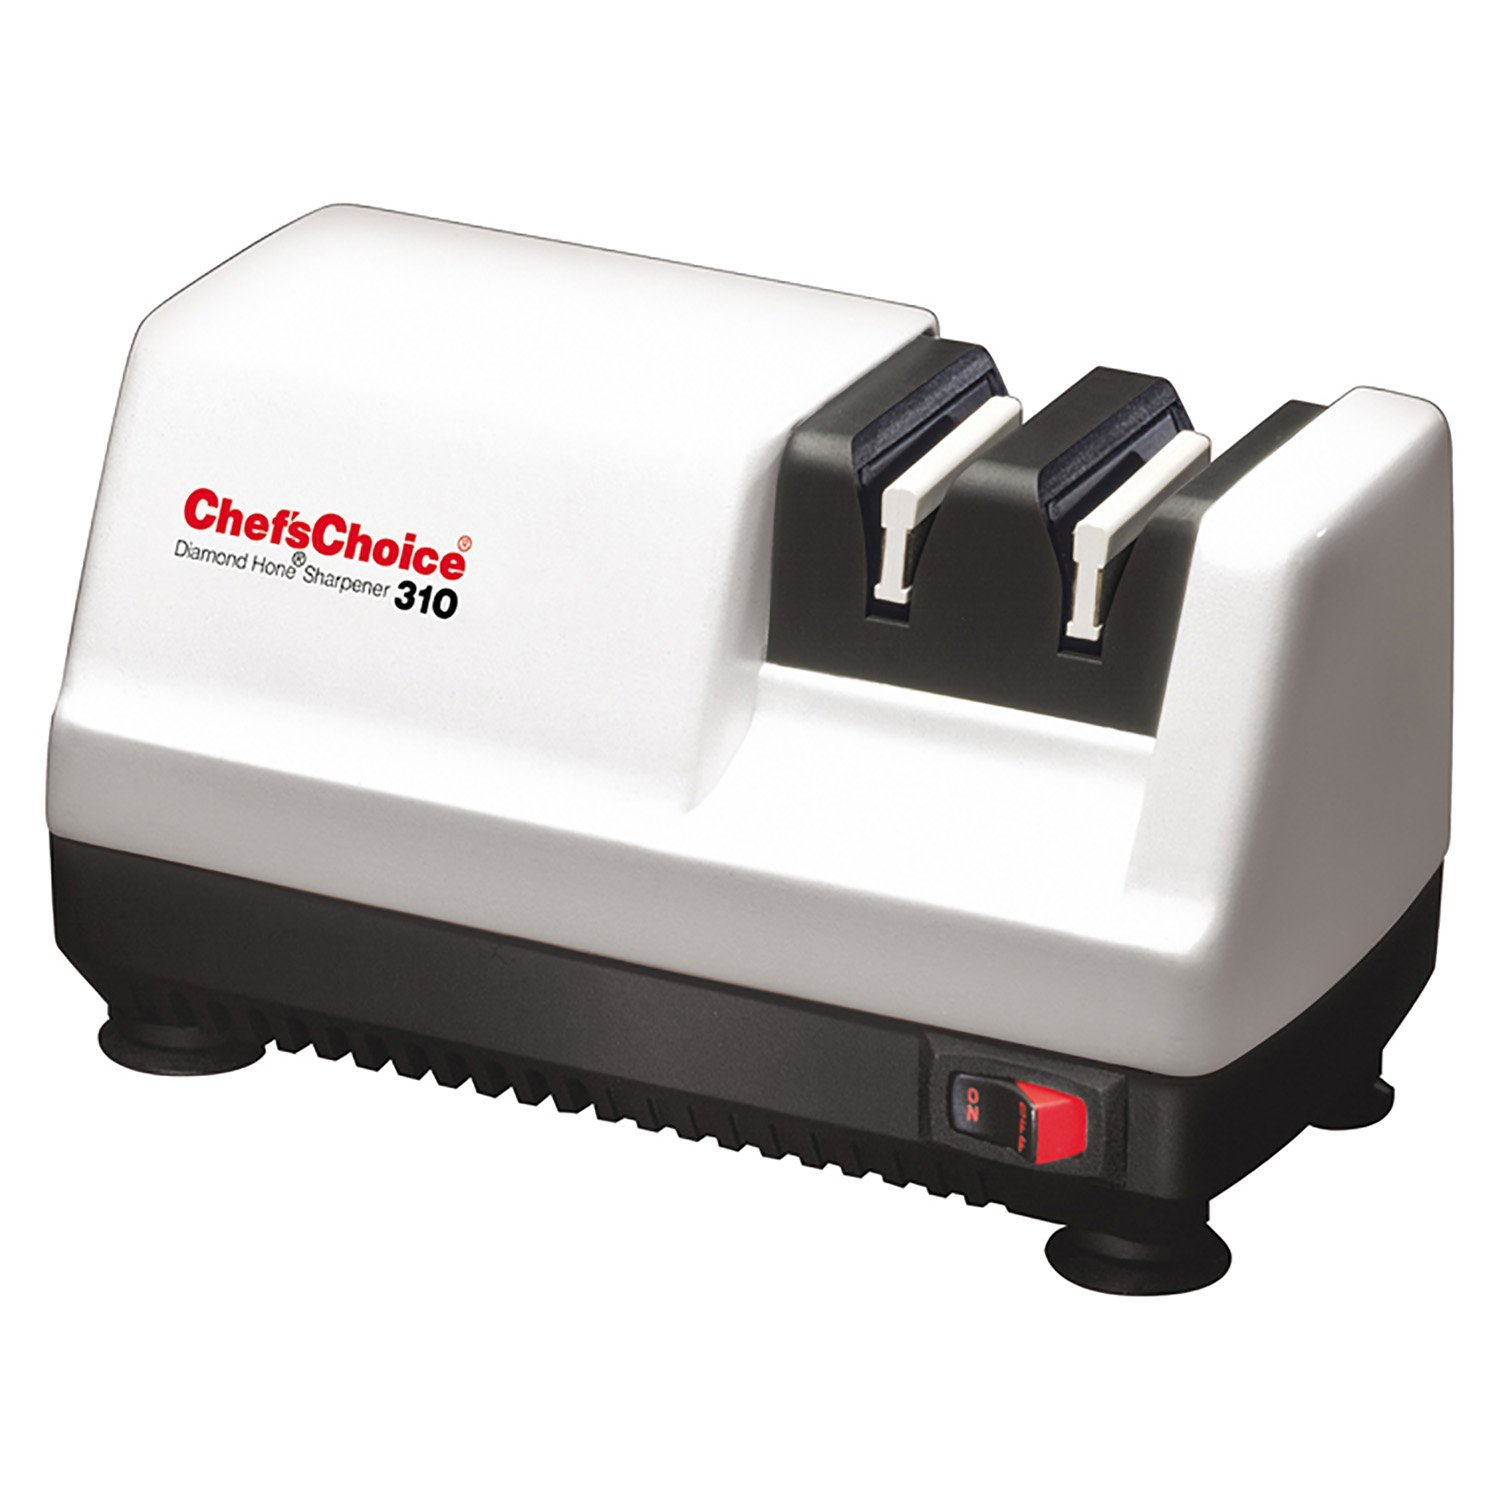 Chef's Choice Diamond Hone Sharpener 310 THUMBNAIL